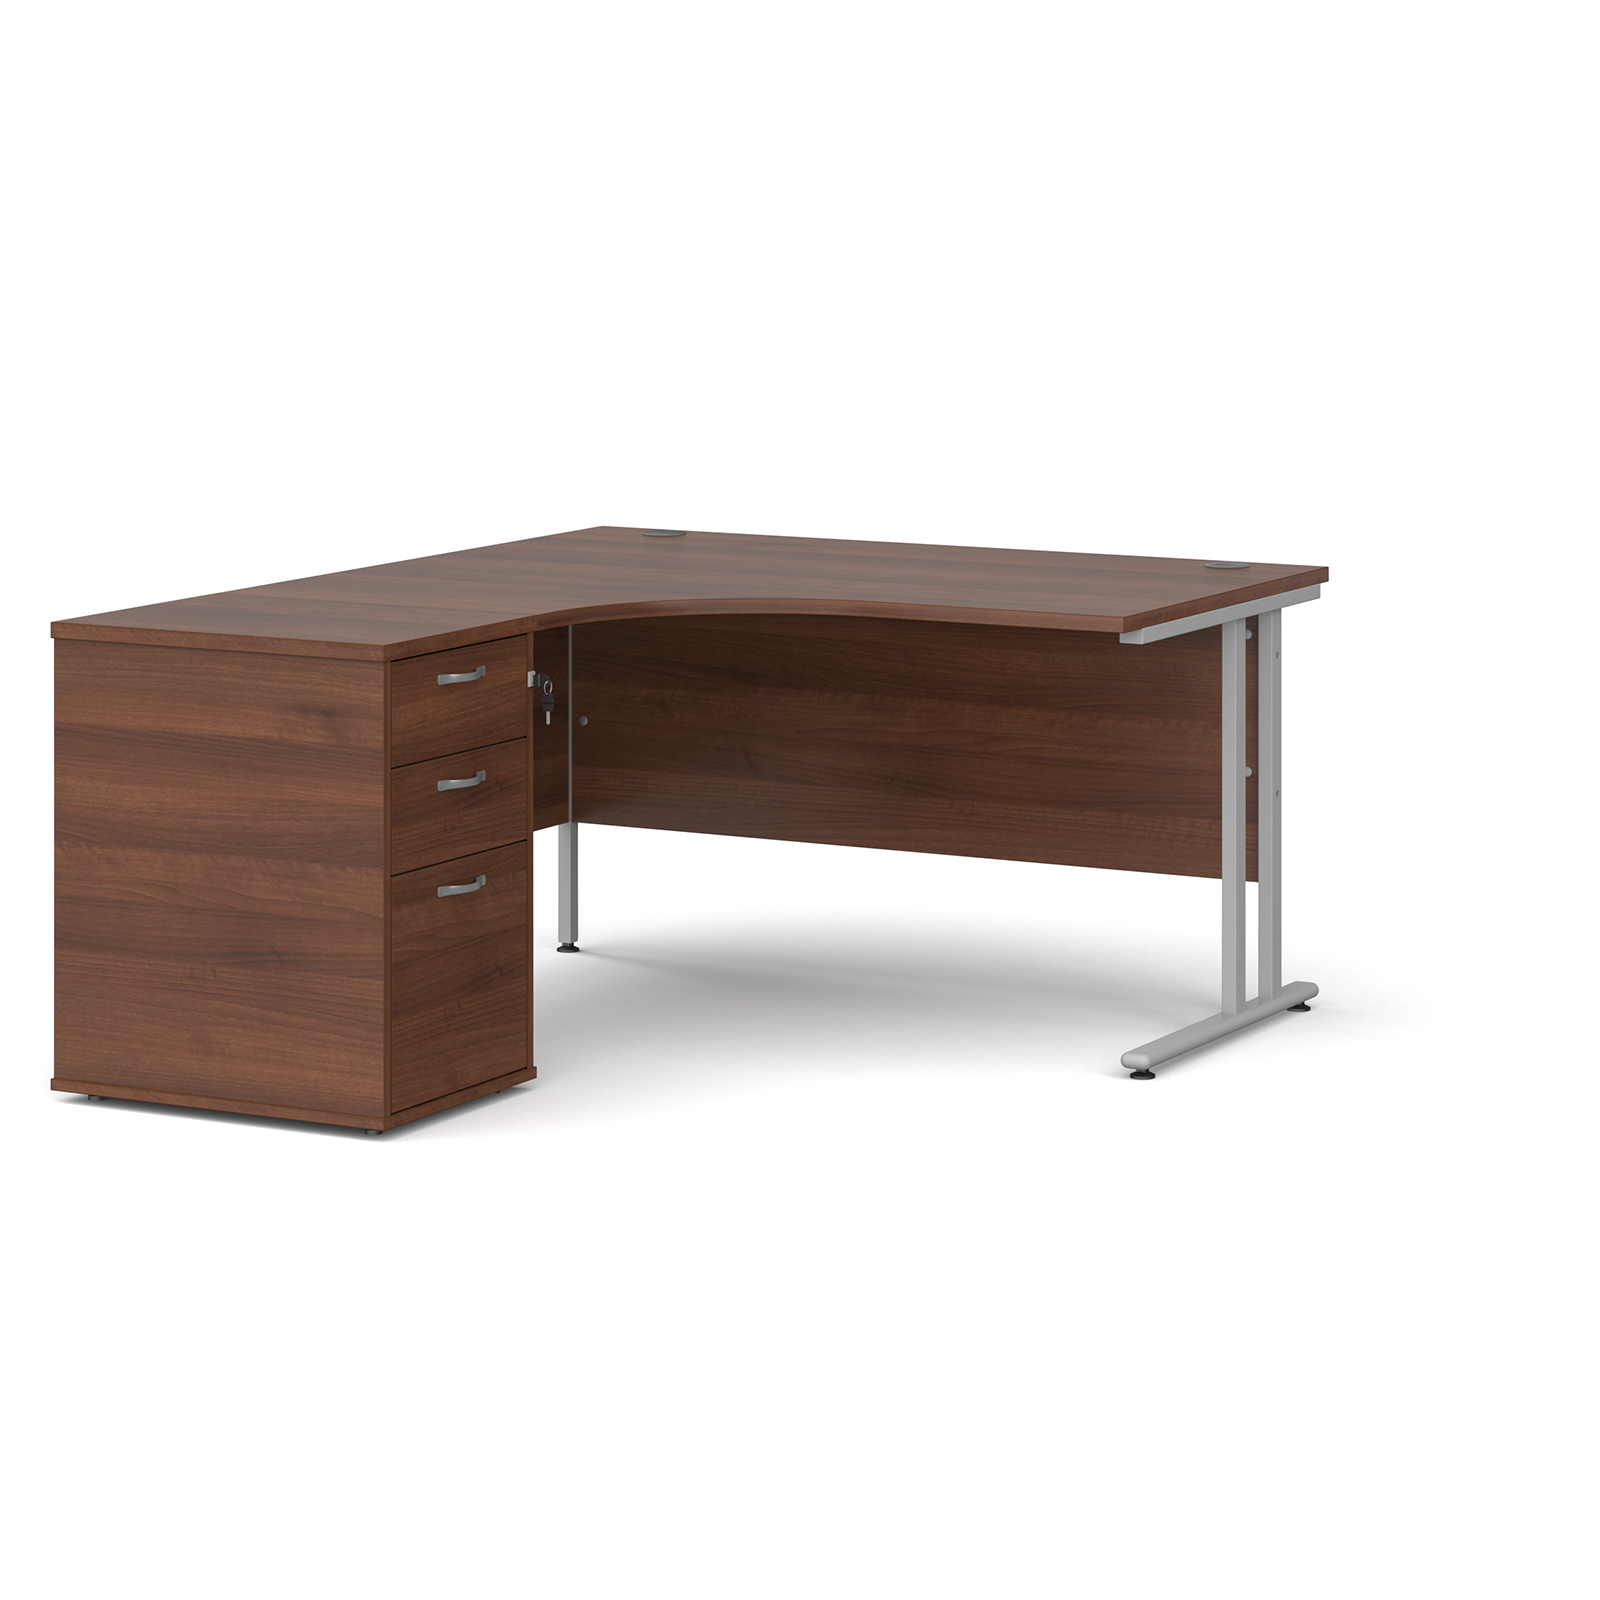 Left Handed Maestro 25 left hand ergonomic desk 1400mm with silver cantilever frame and desk high pedestal - walnut